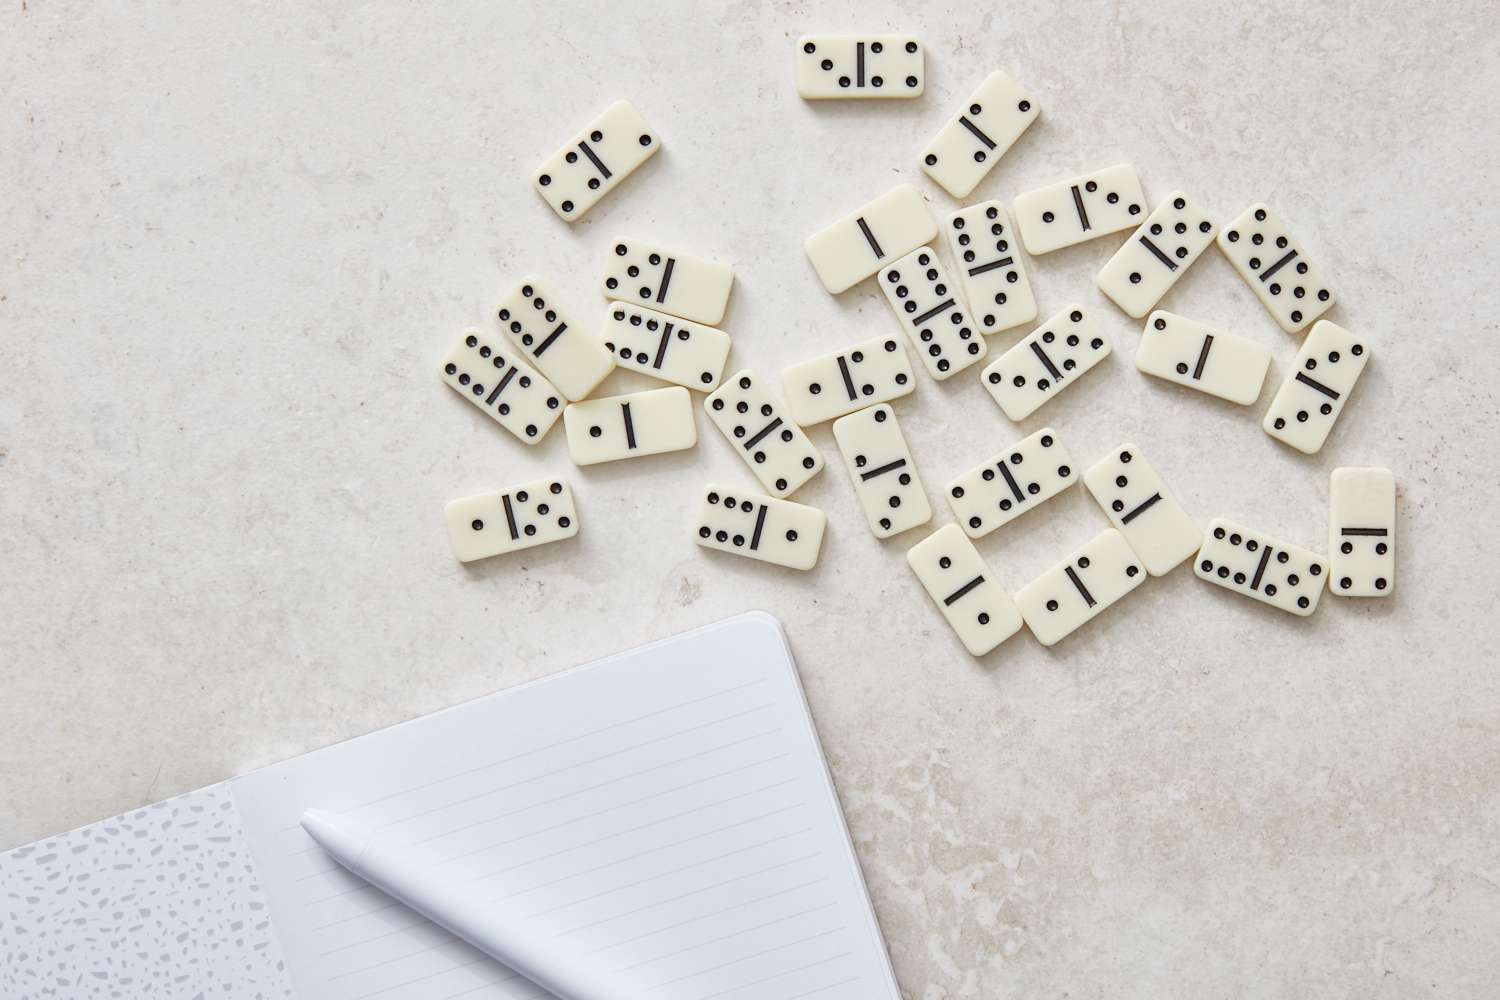 All Fives Dominoes Game Rules